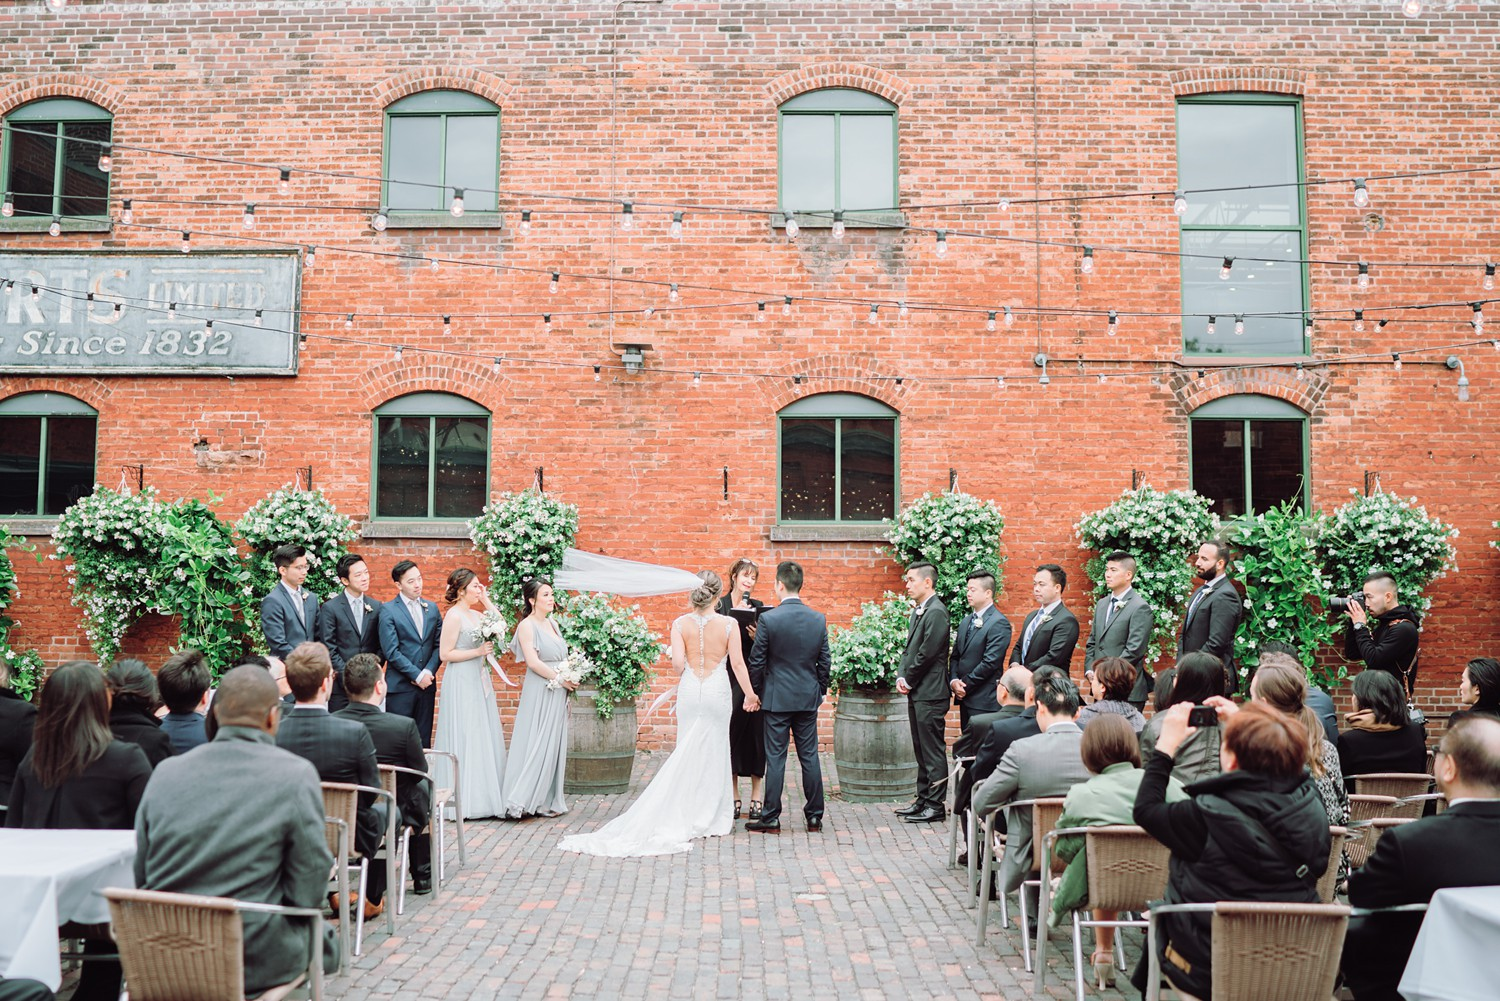 Outdoor_Ceremony_Archeo_Distillery_District_Wedding_Photos_Toronto_Destination_Wedding_Photographer-Rhythm_Photography